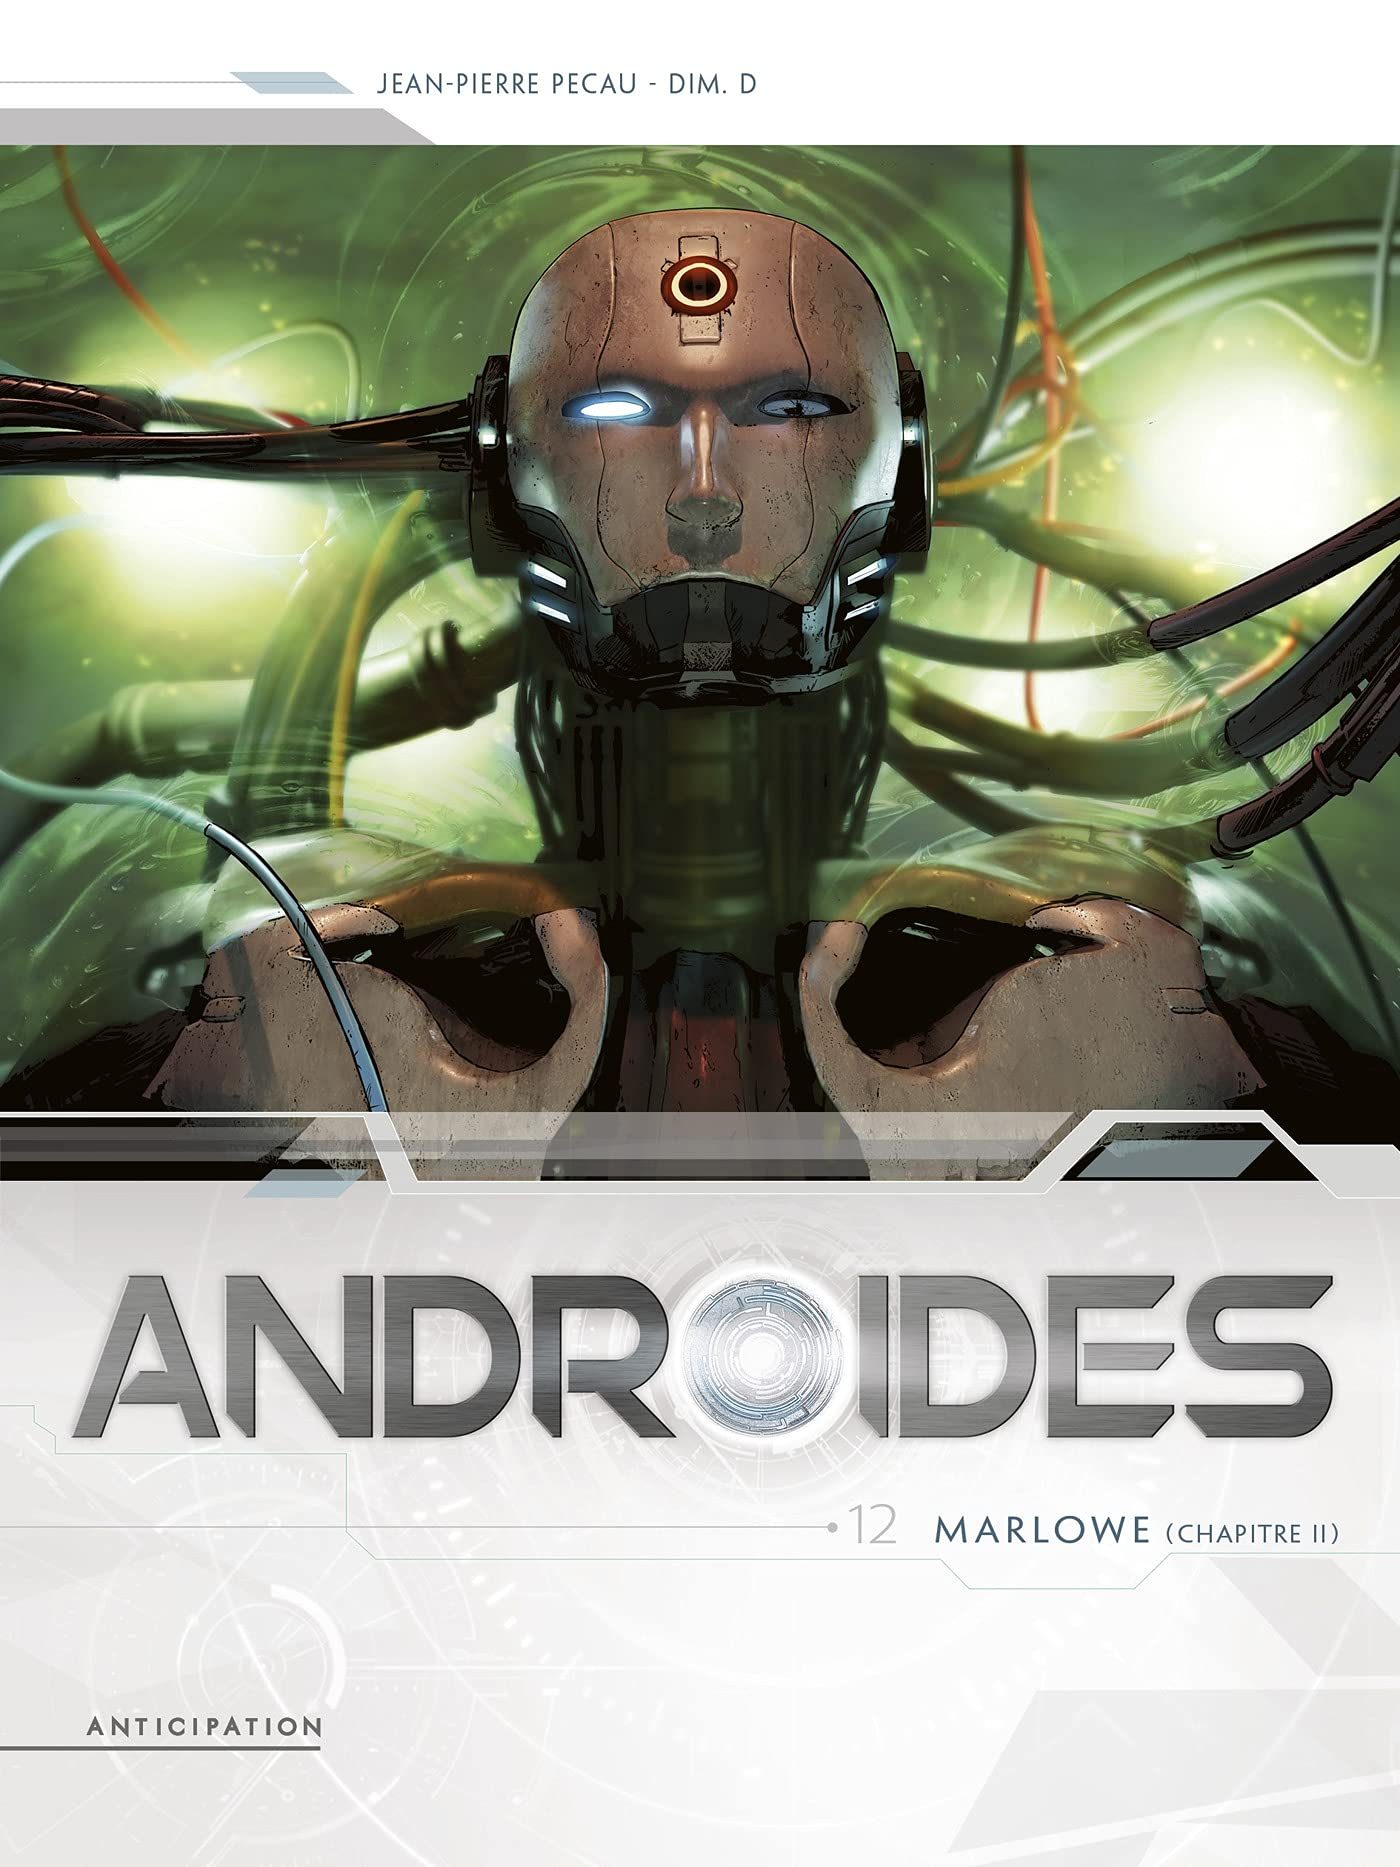 Androïdes 12 - Marlowe (chapitre 2)